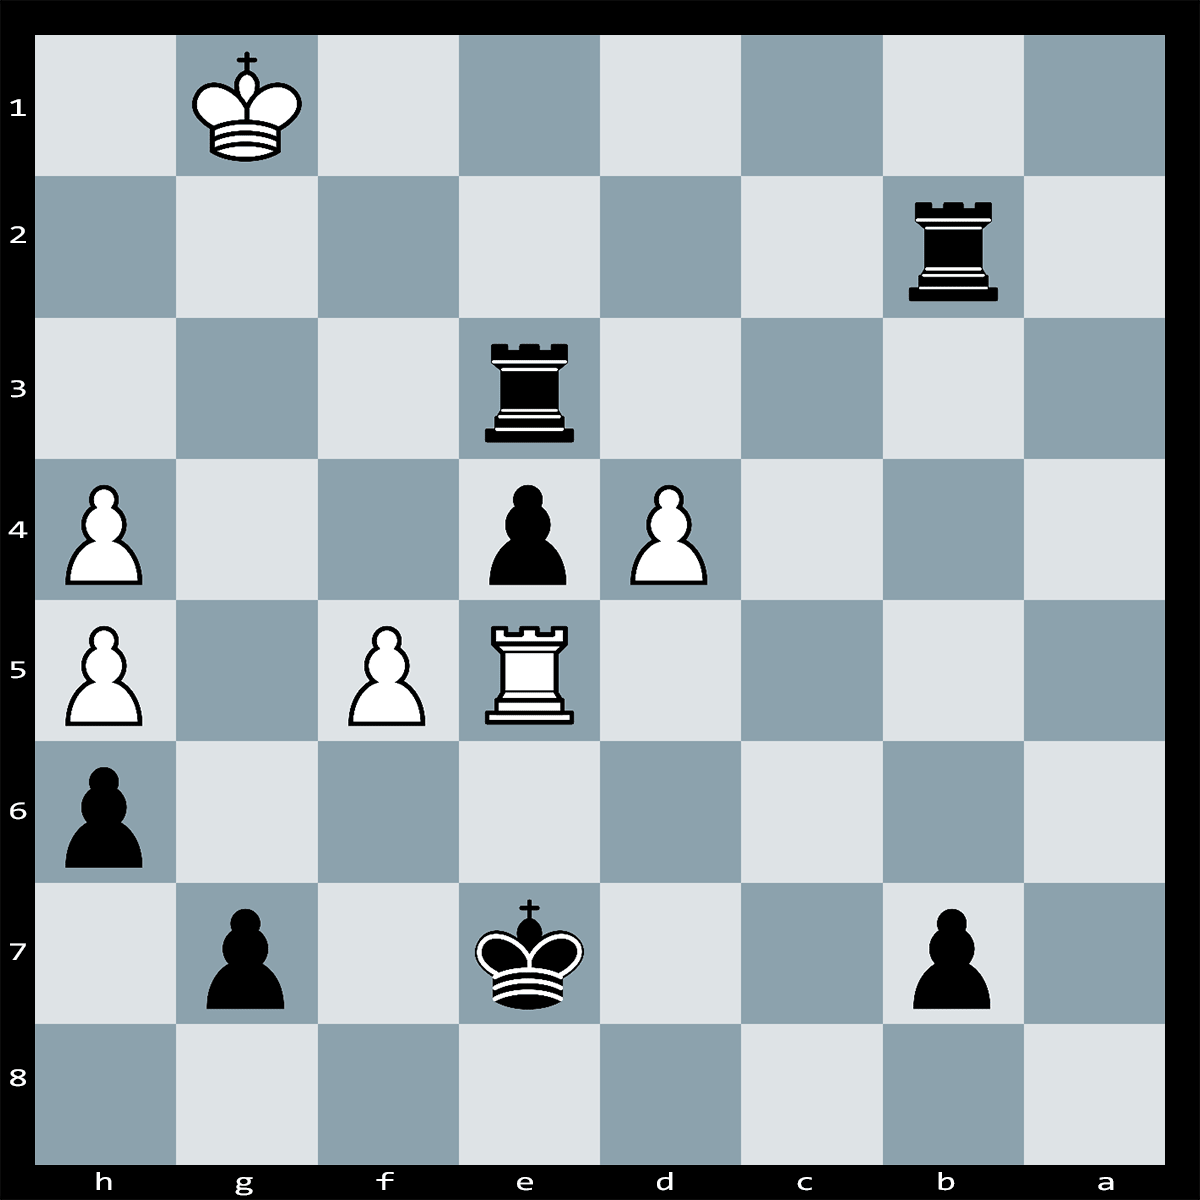 Mate in 5 Moves Black to Play - Chess Puzzle #23